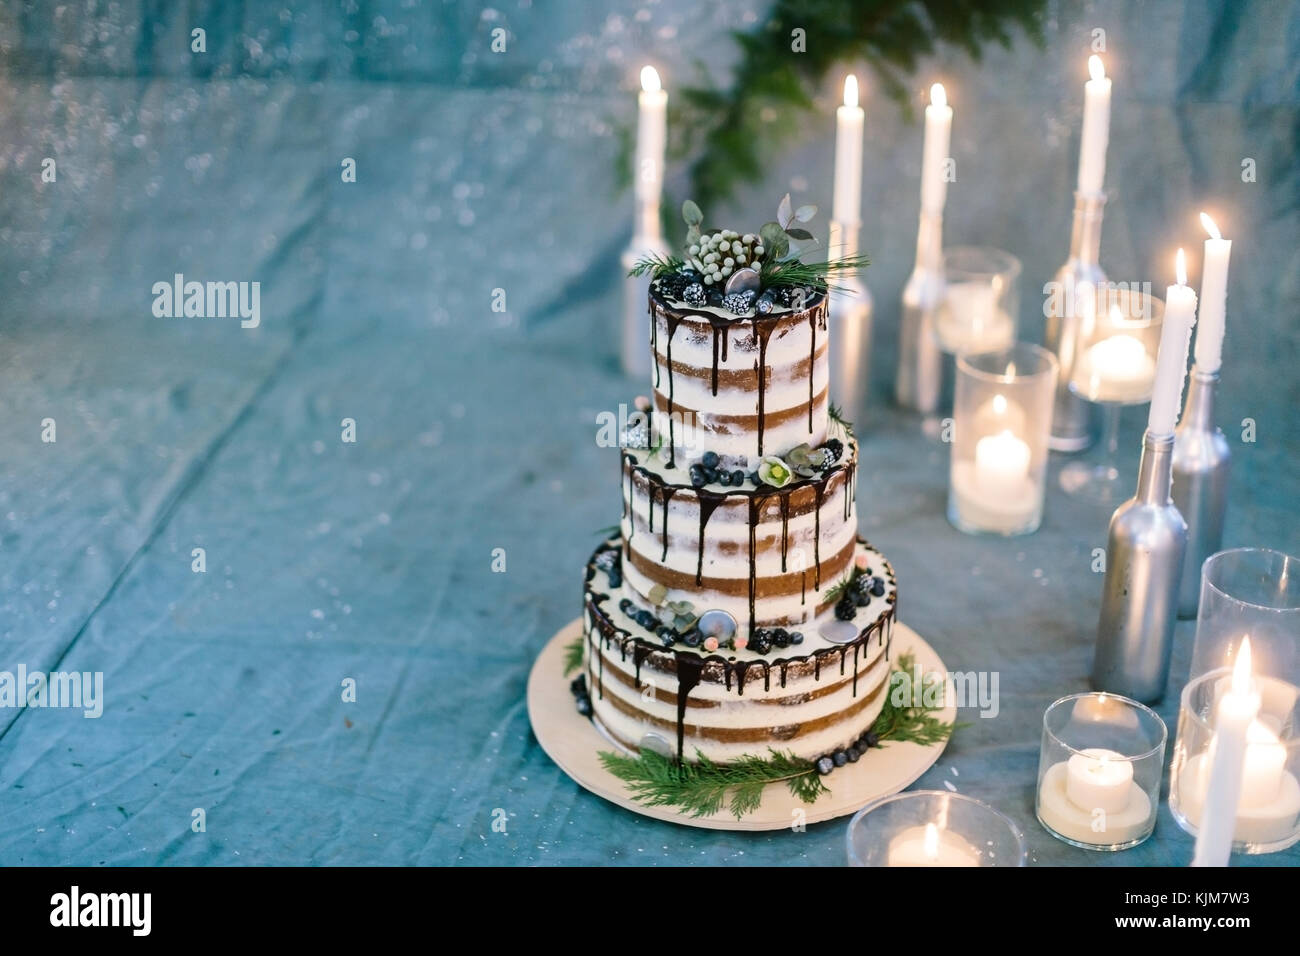 confectionary, dessert, party concept. marvelous cake composed of three tiers, all of them carefully decorated with - Stock Image